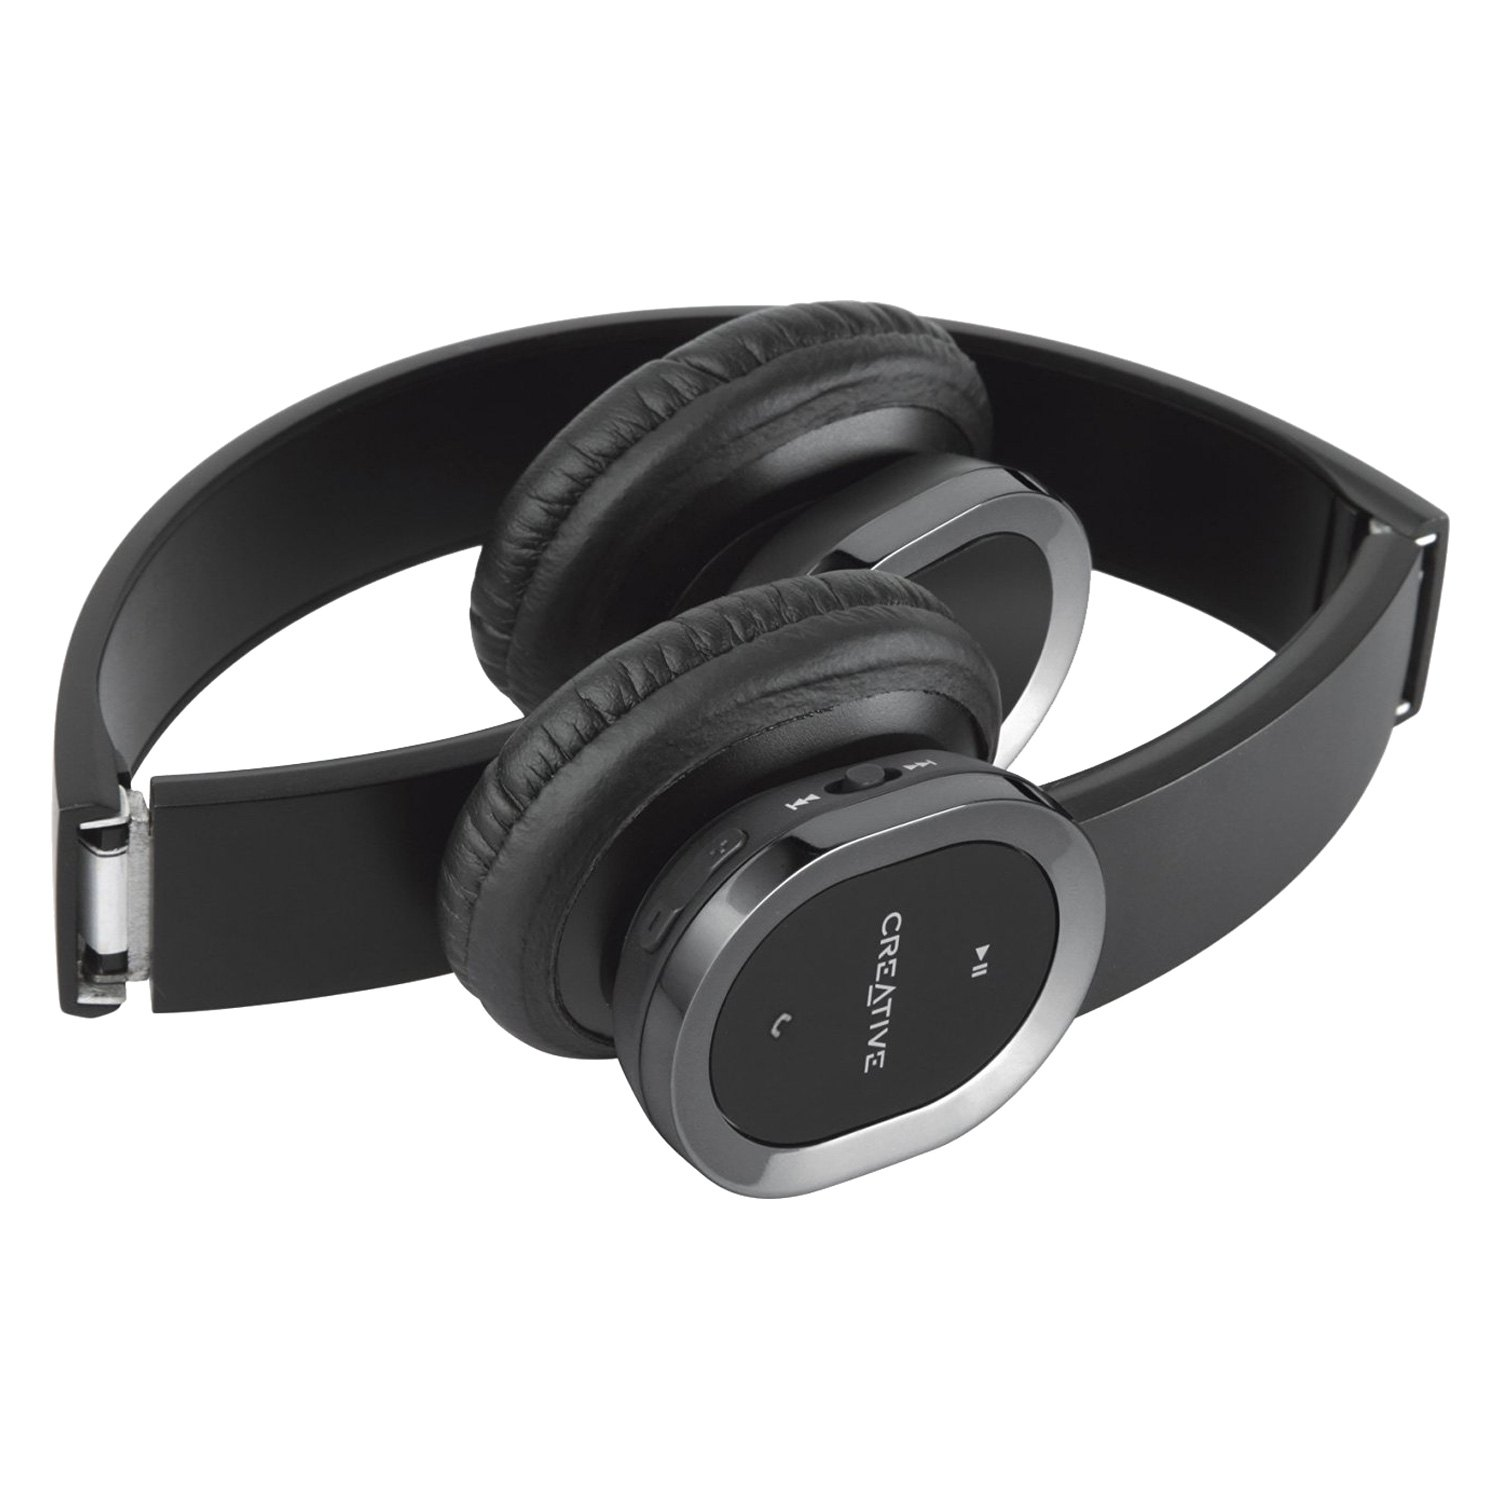 Philips M1/28 Fidelio On-Ear Headphones With Remote And Mic - Black (Discontinued By Manufacturer) On Amazon